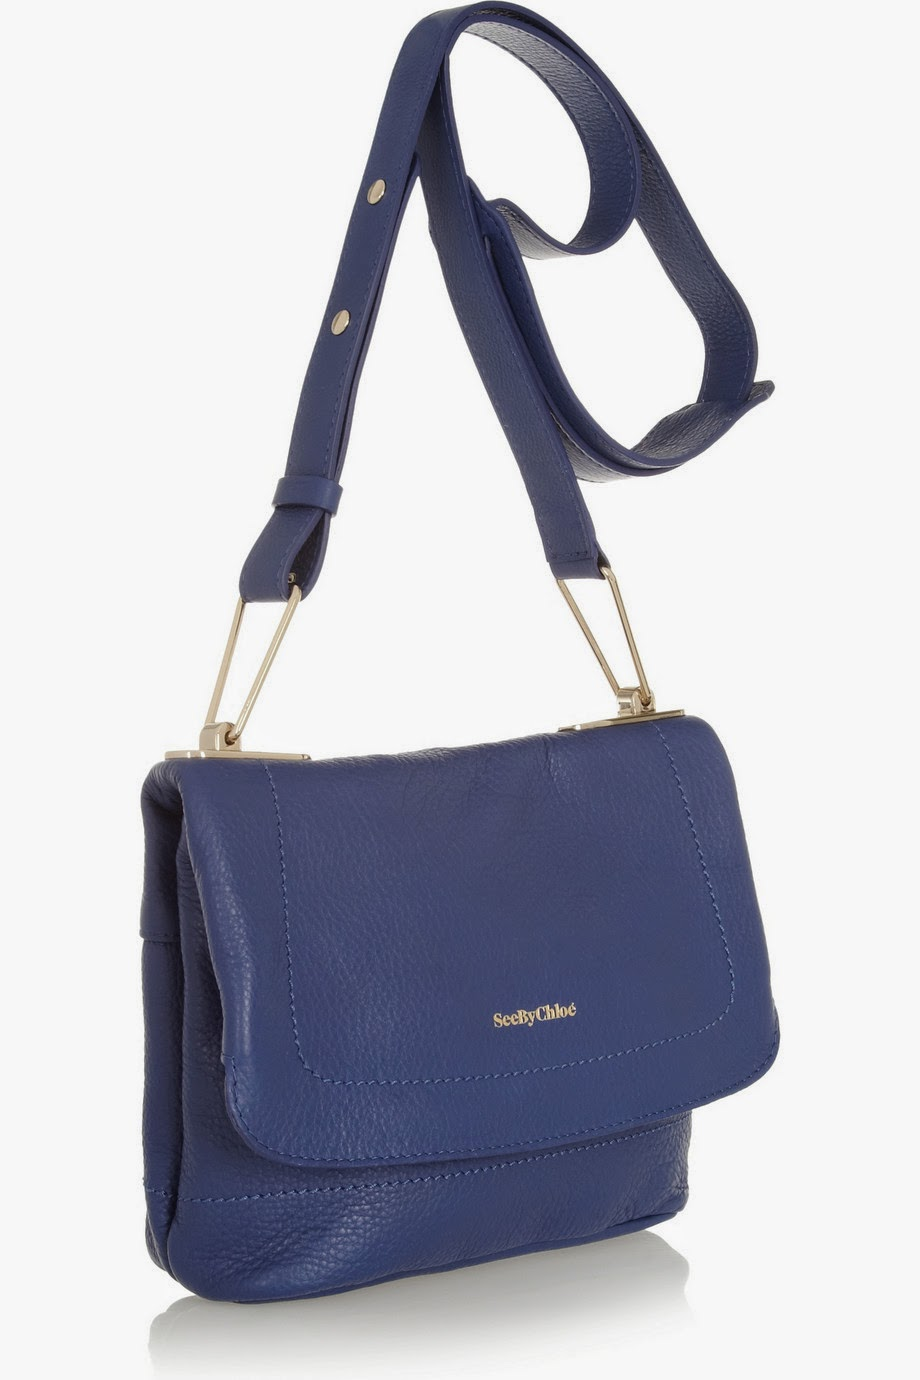 Designer Shoulder Bags Less Than £300 at Net-A-Porter